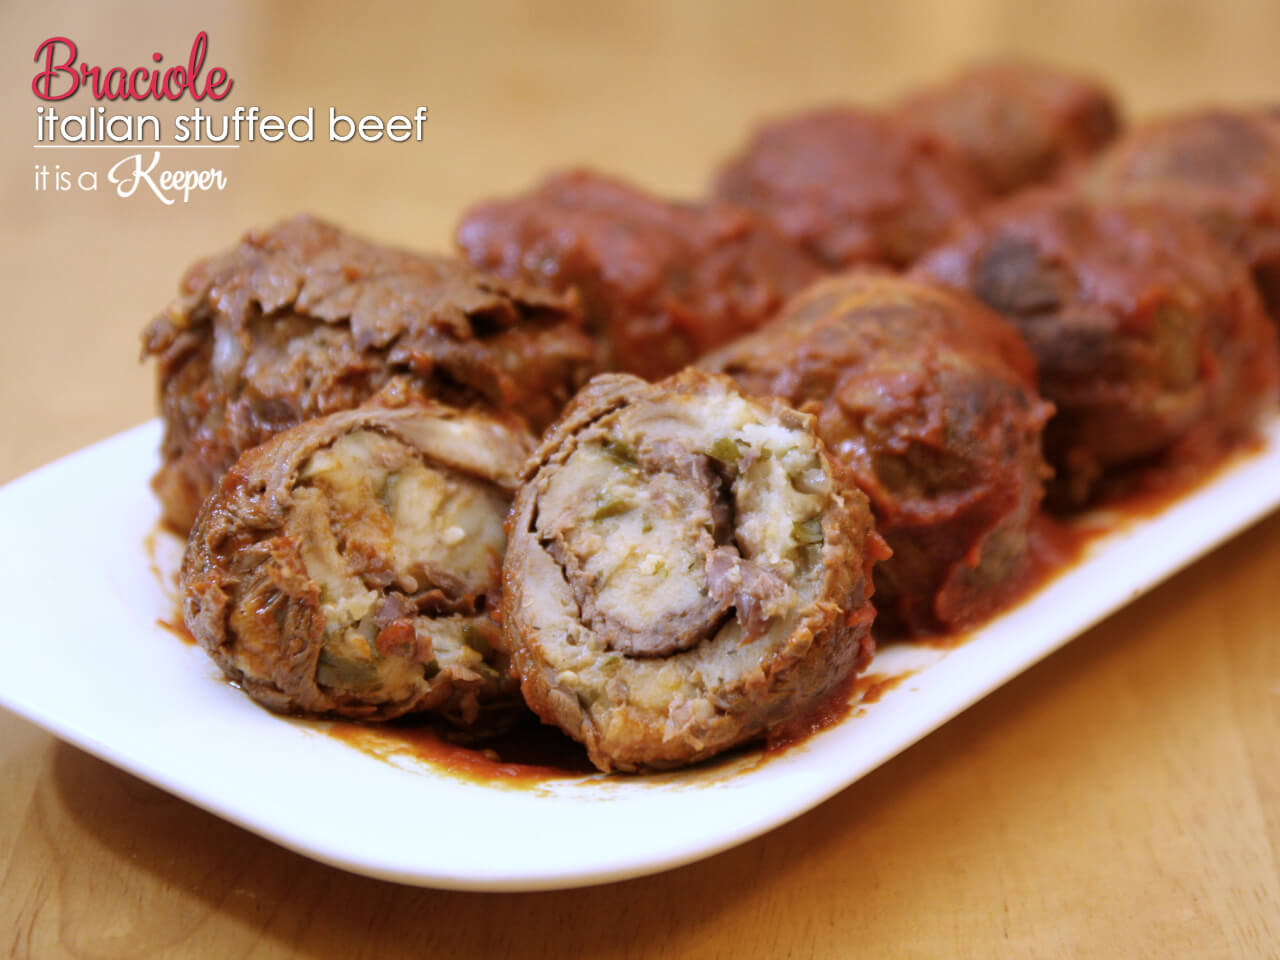 Braciole - this recipe is a traditional Italian recipe of beef that is stuffed and braised in tomato sauce